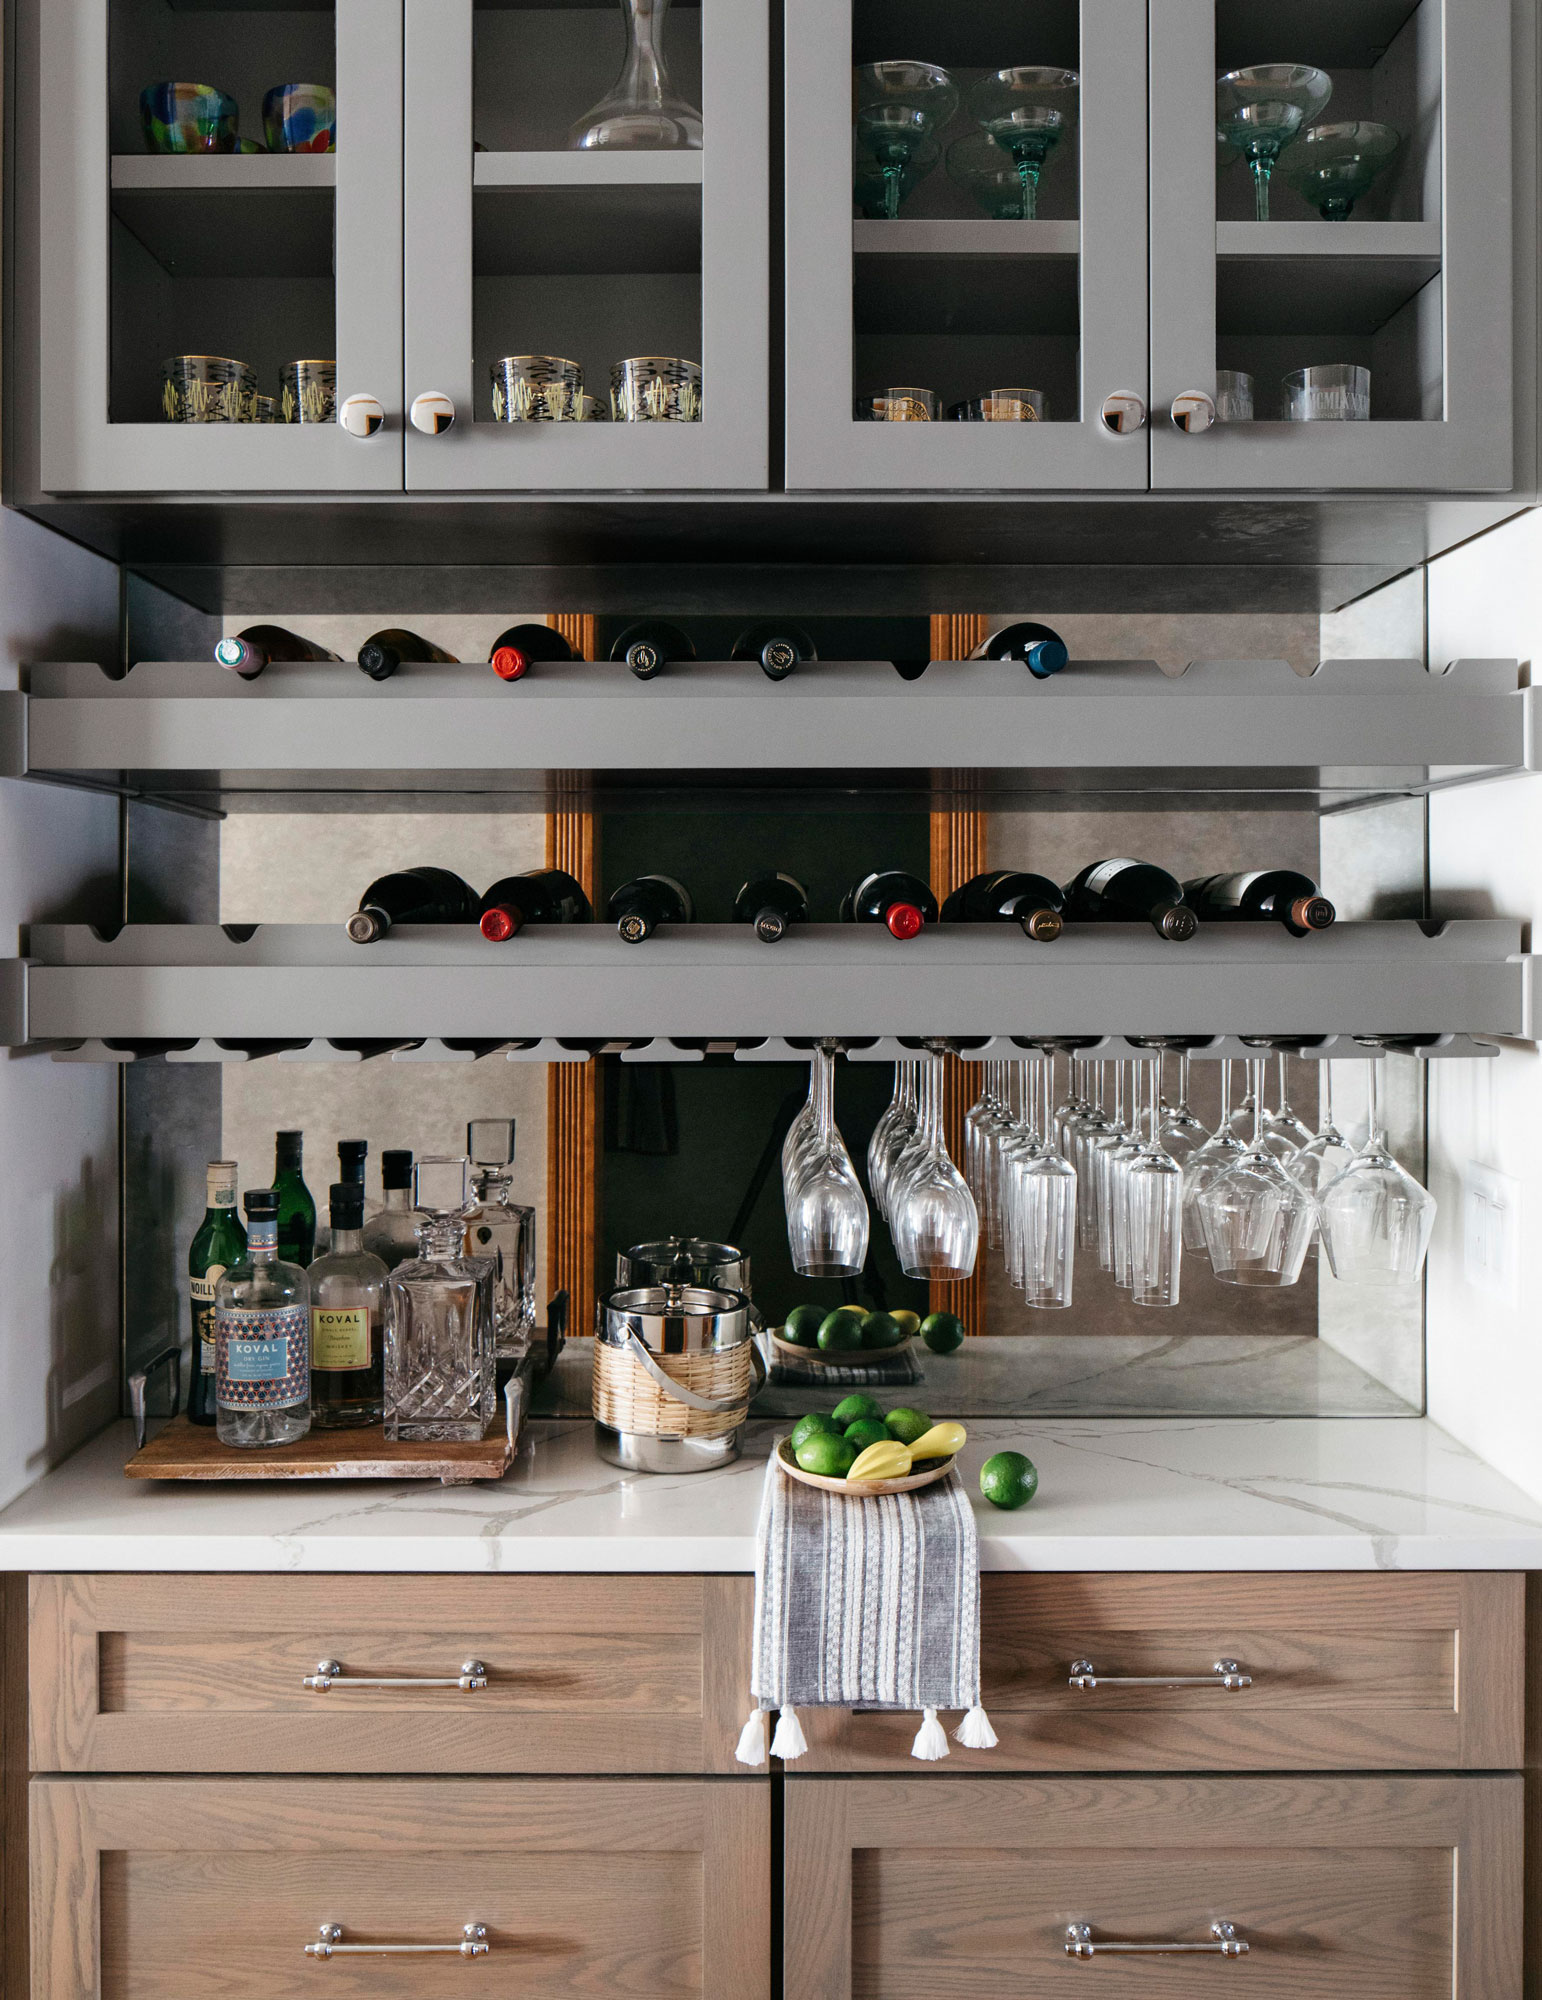 Chicago kitchen by designer Steph Flemming